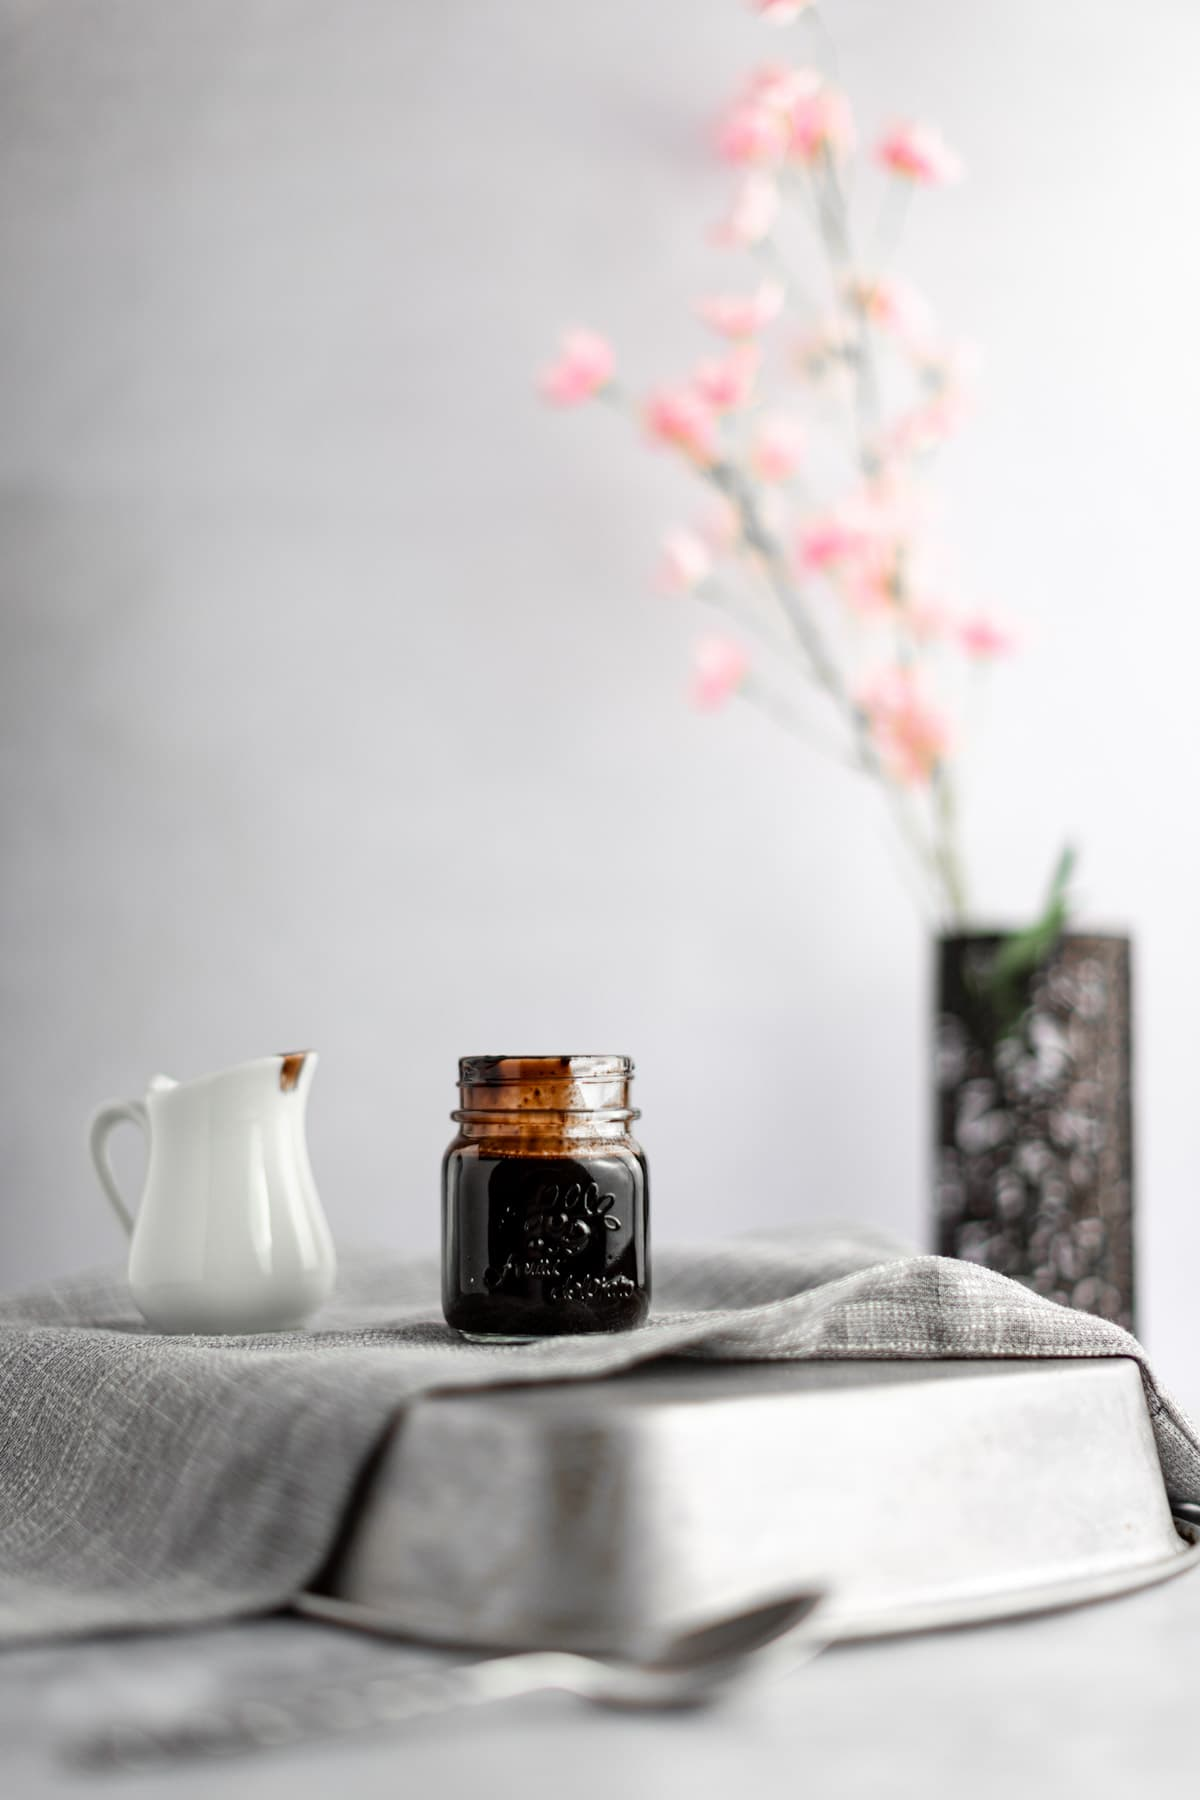 A small glass jar of syrup sitting on a grey napkin on a flipped over tin pan, next to a creamer just, with pink flowers in the background.